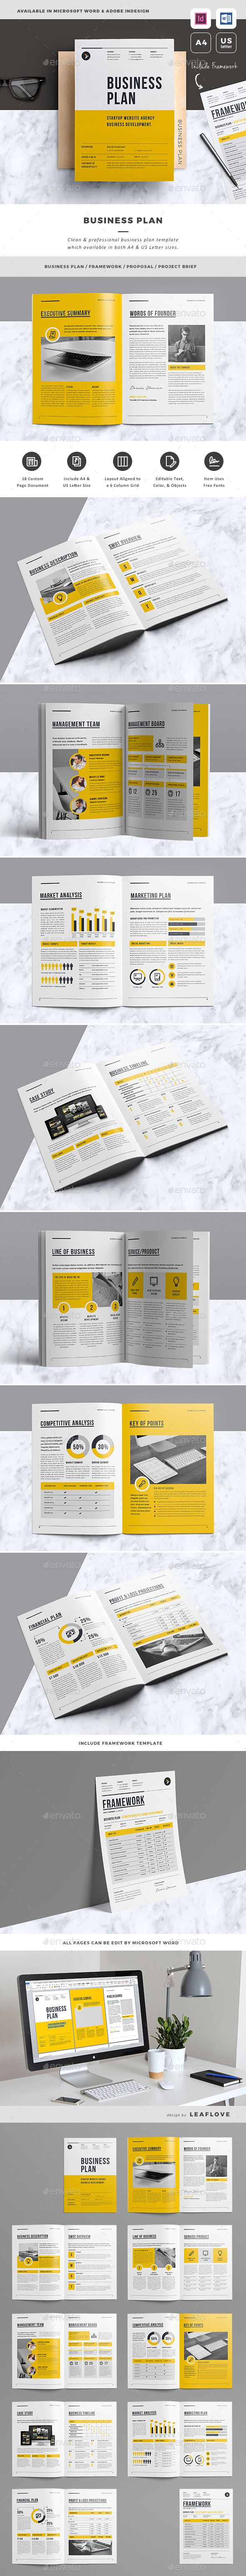 Business Plan | Businessplan, Grafikdesign und Grafiken